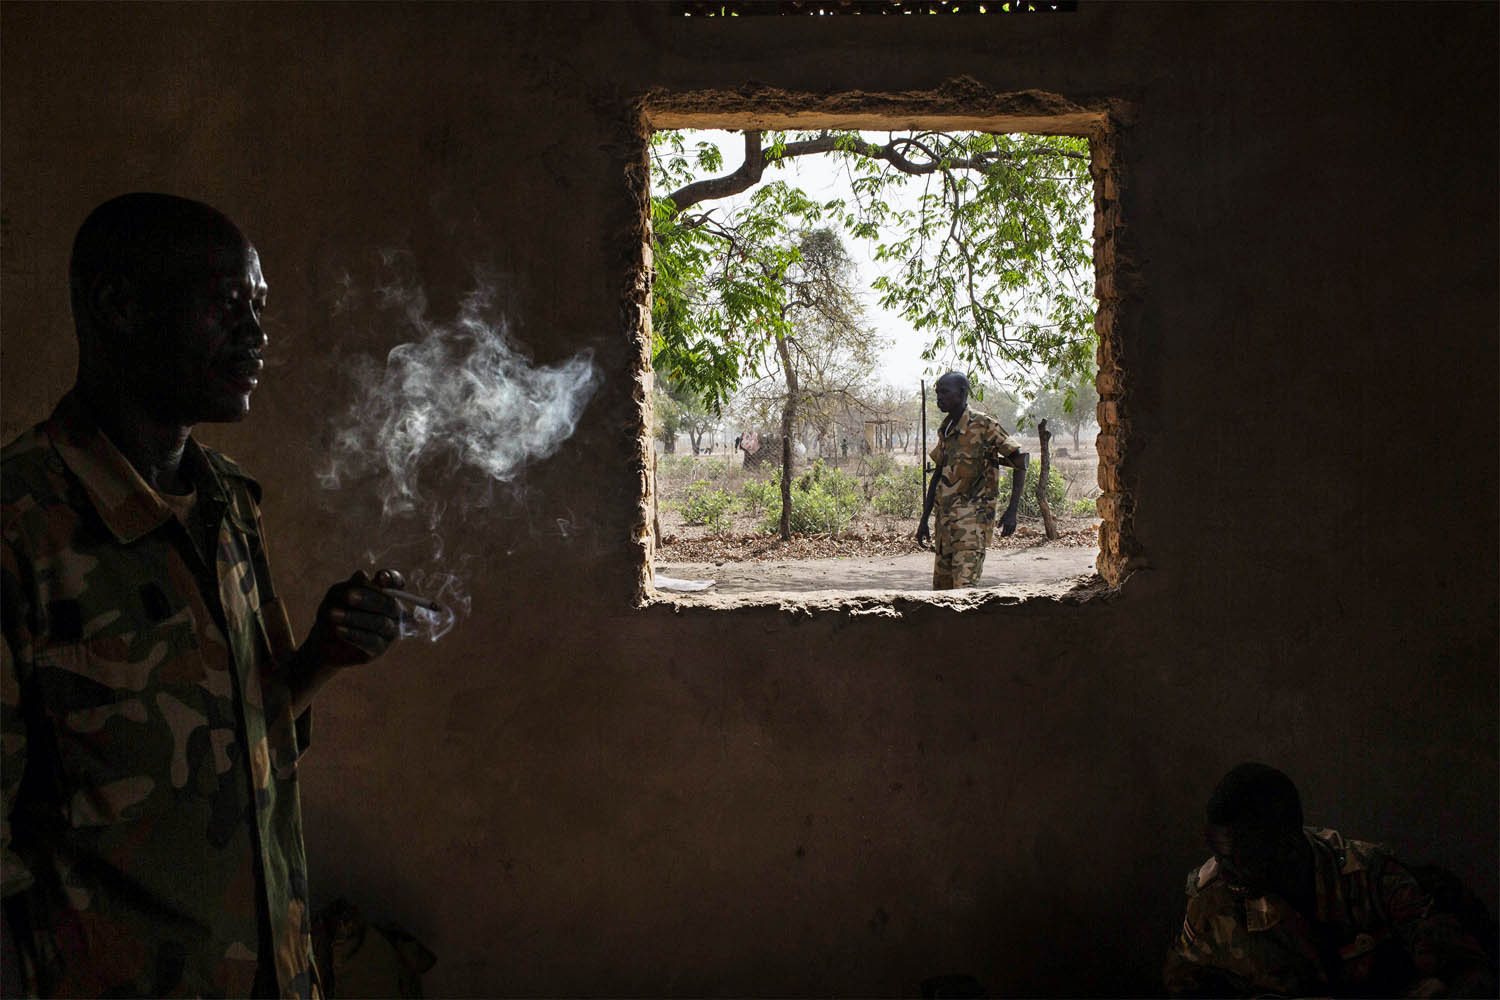 Feb. 15, 2014. A Sudan People's Liberation Army (SPLA) government soldier from the 2nd Battalion smokes a cigarette at the SPLA headquarters in Nyang, in the county of Yirol East, South Sudan.